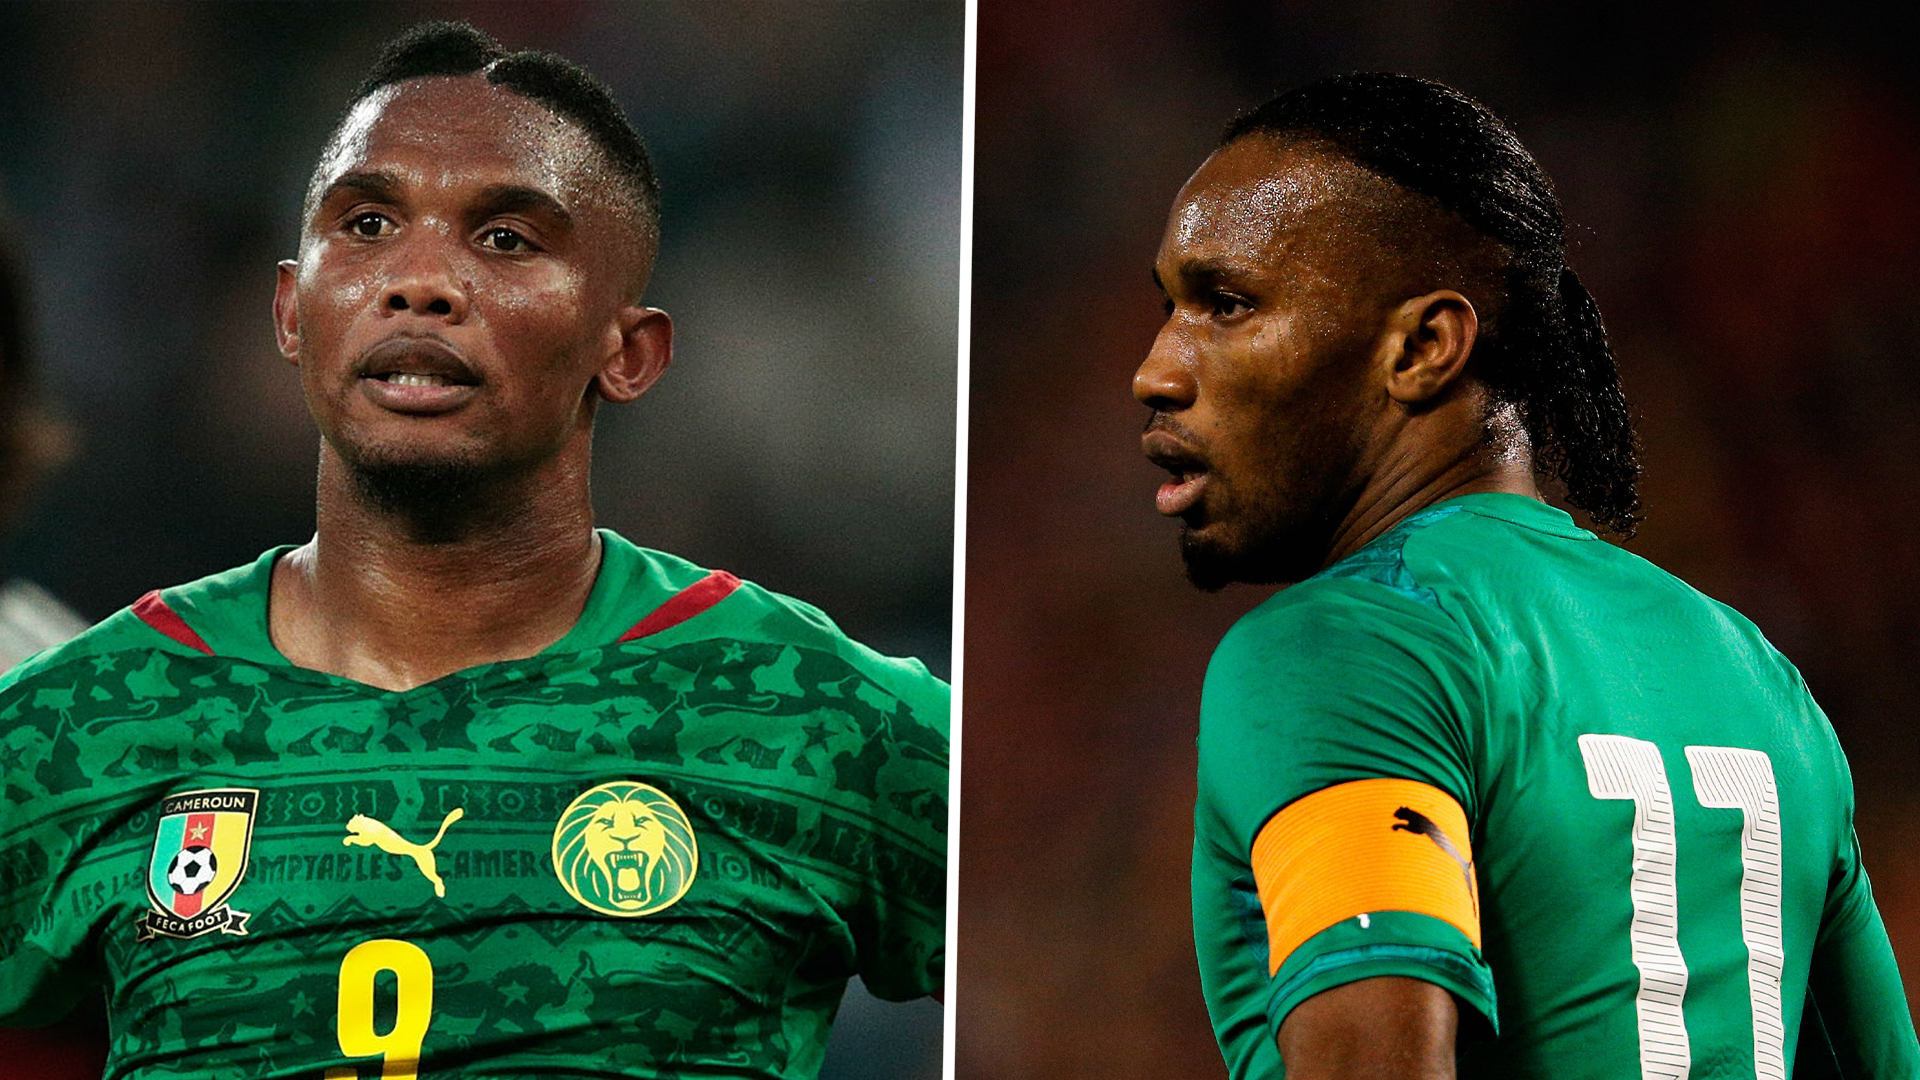 Drogba joins Eto'o in slamming 'racist' comments on Coronavirus testing in Africa